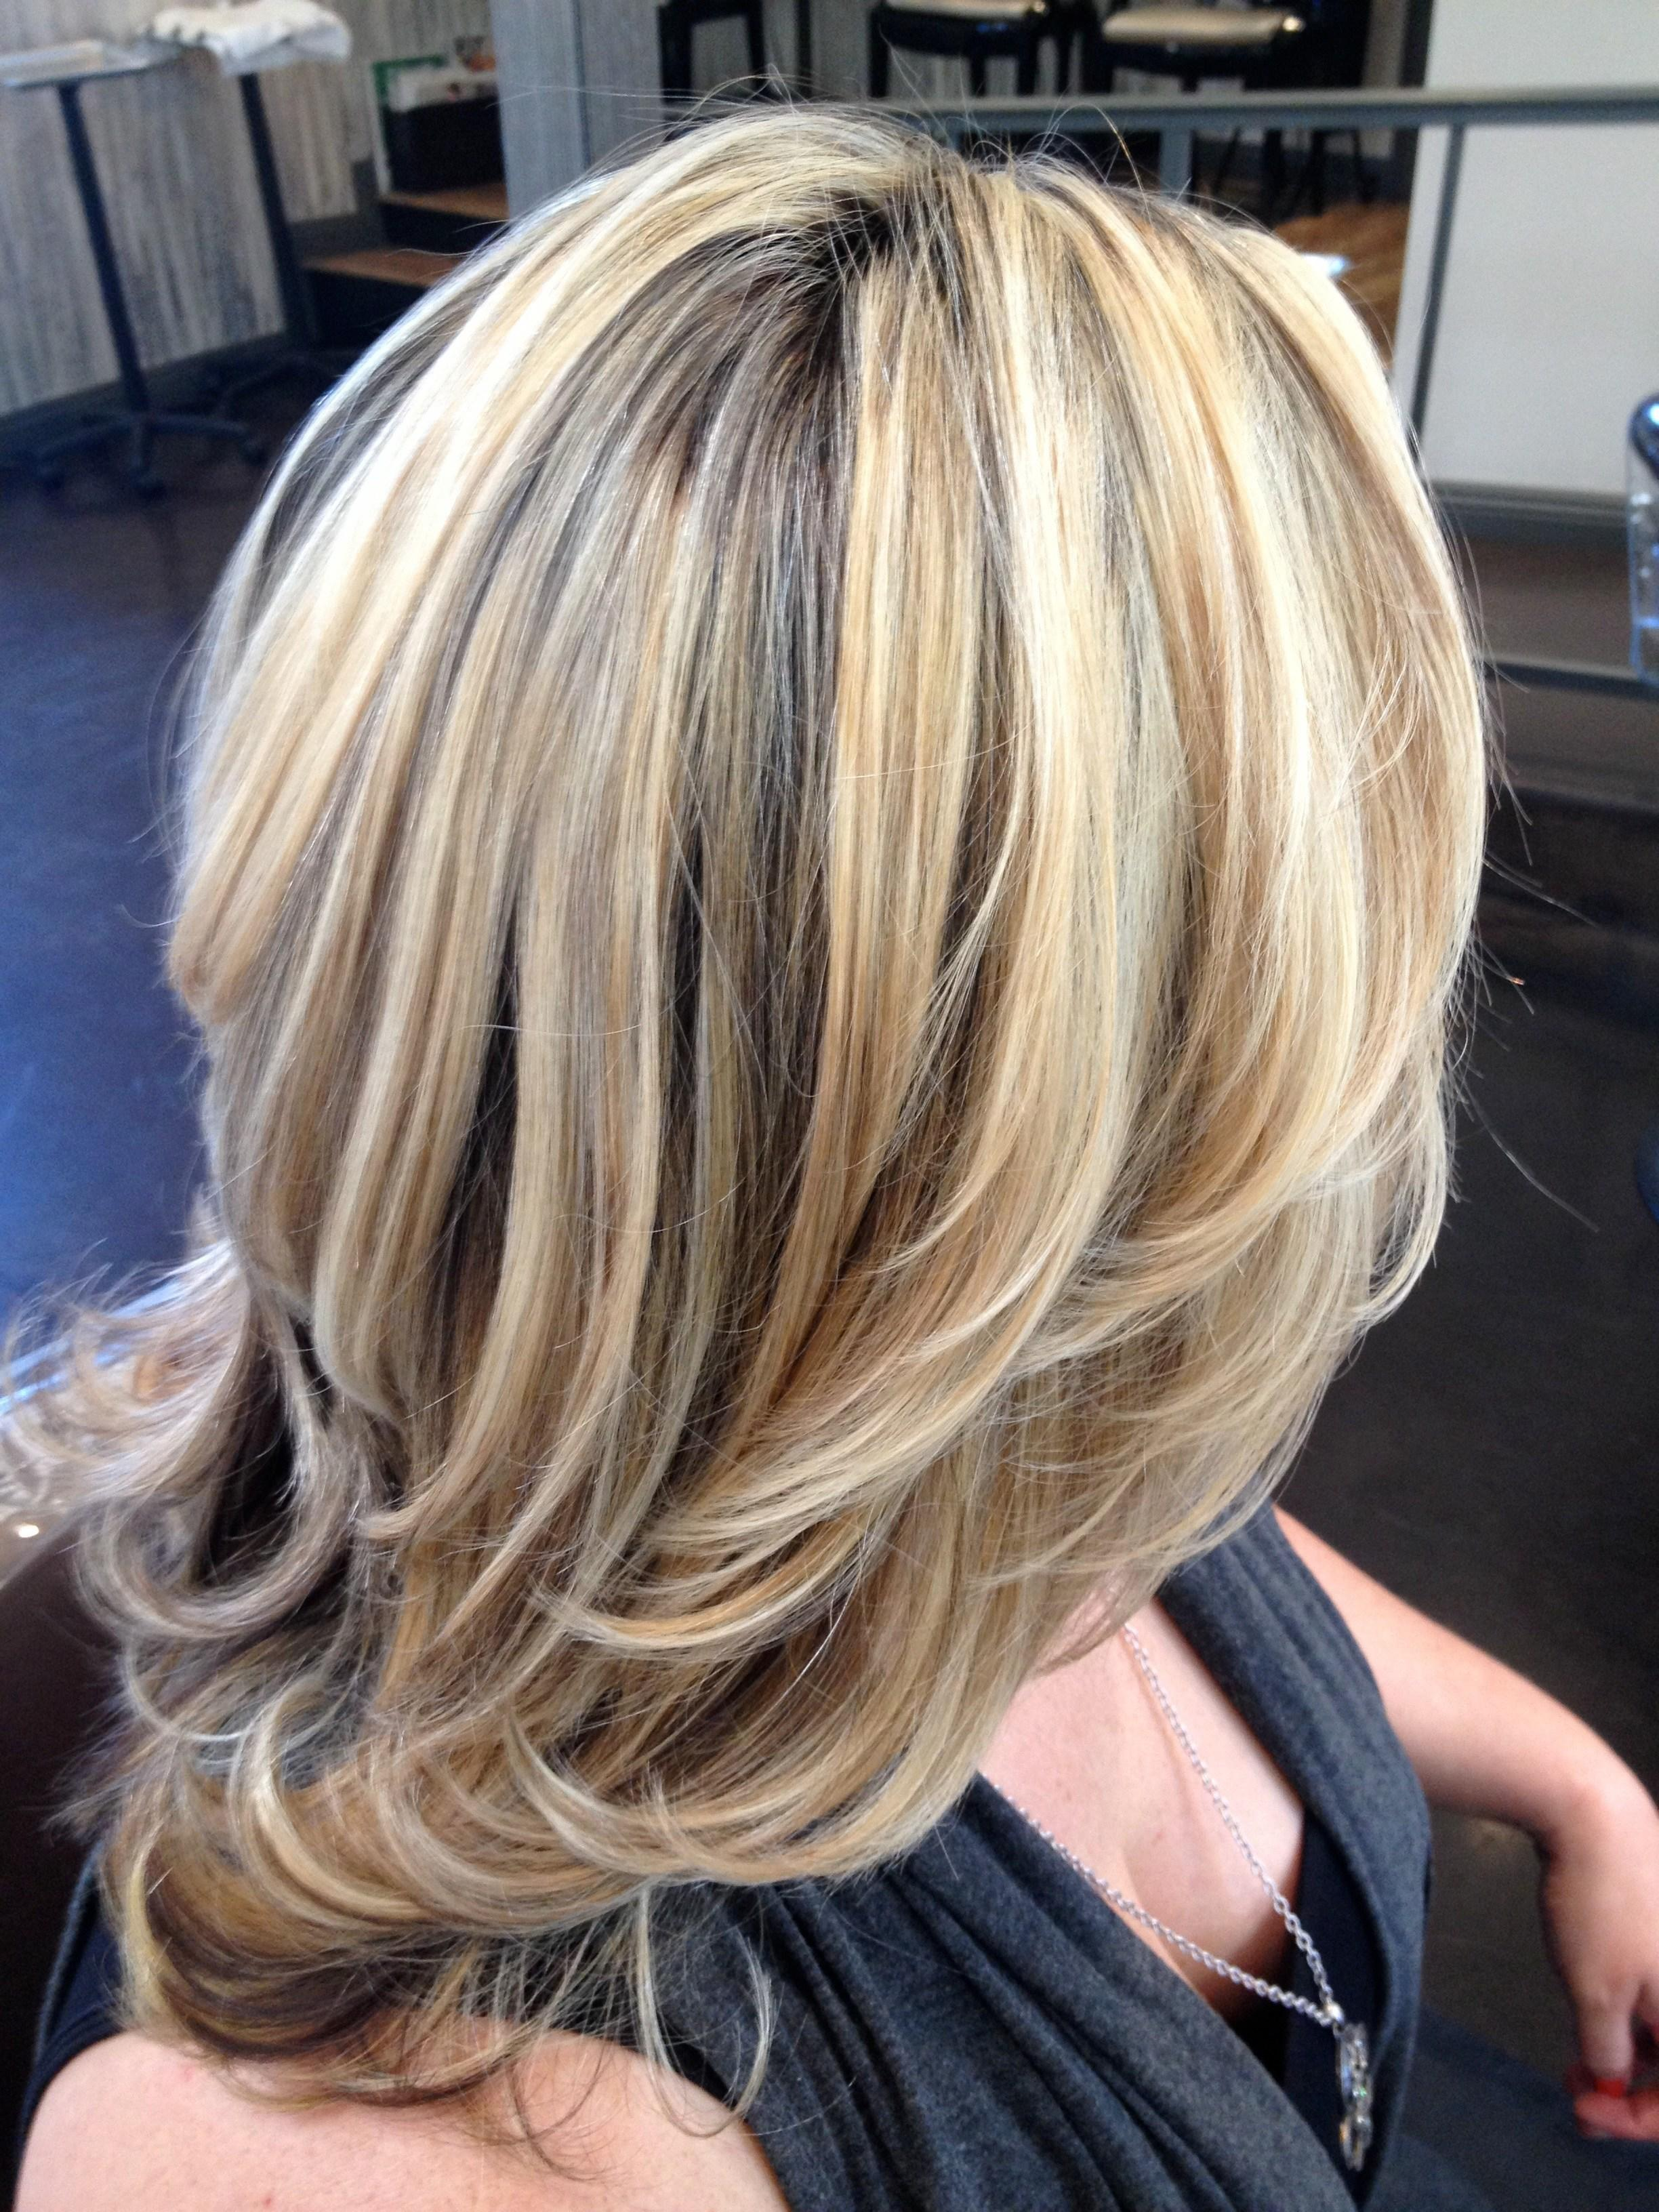 New Natural Blonde Highlights – Jonathan George Ideas With Pictures